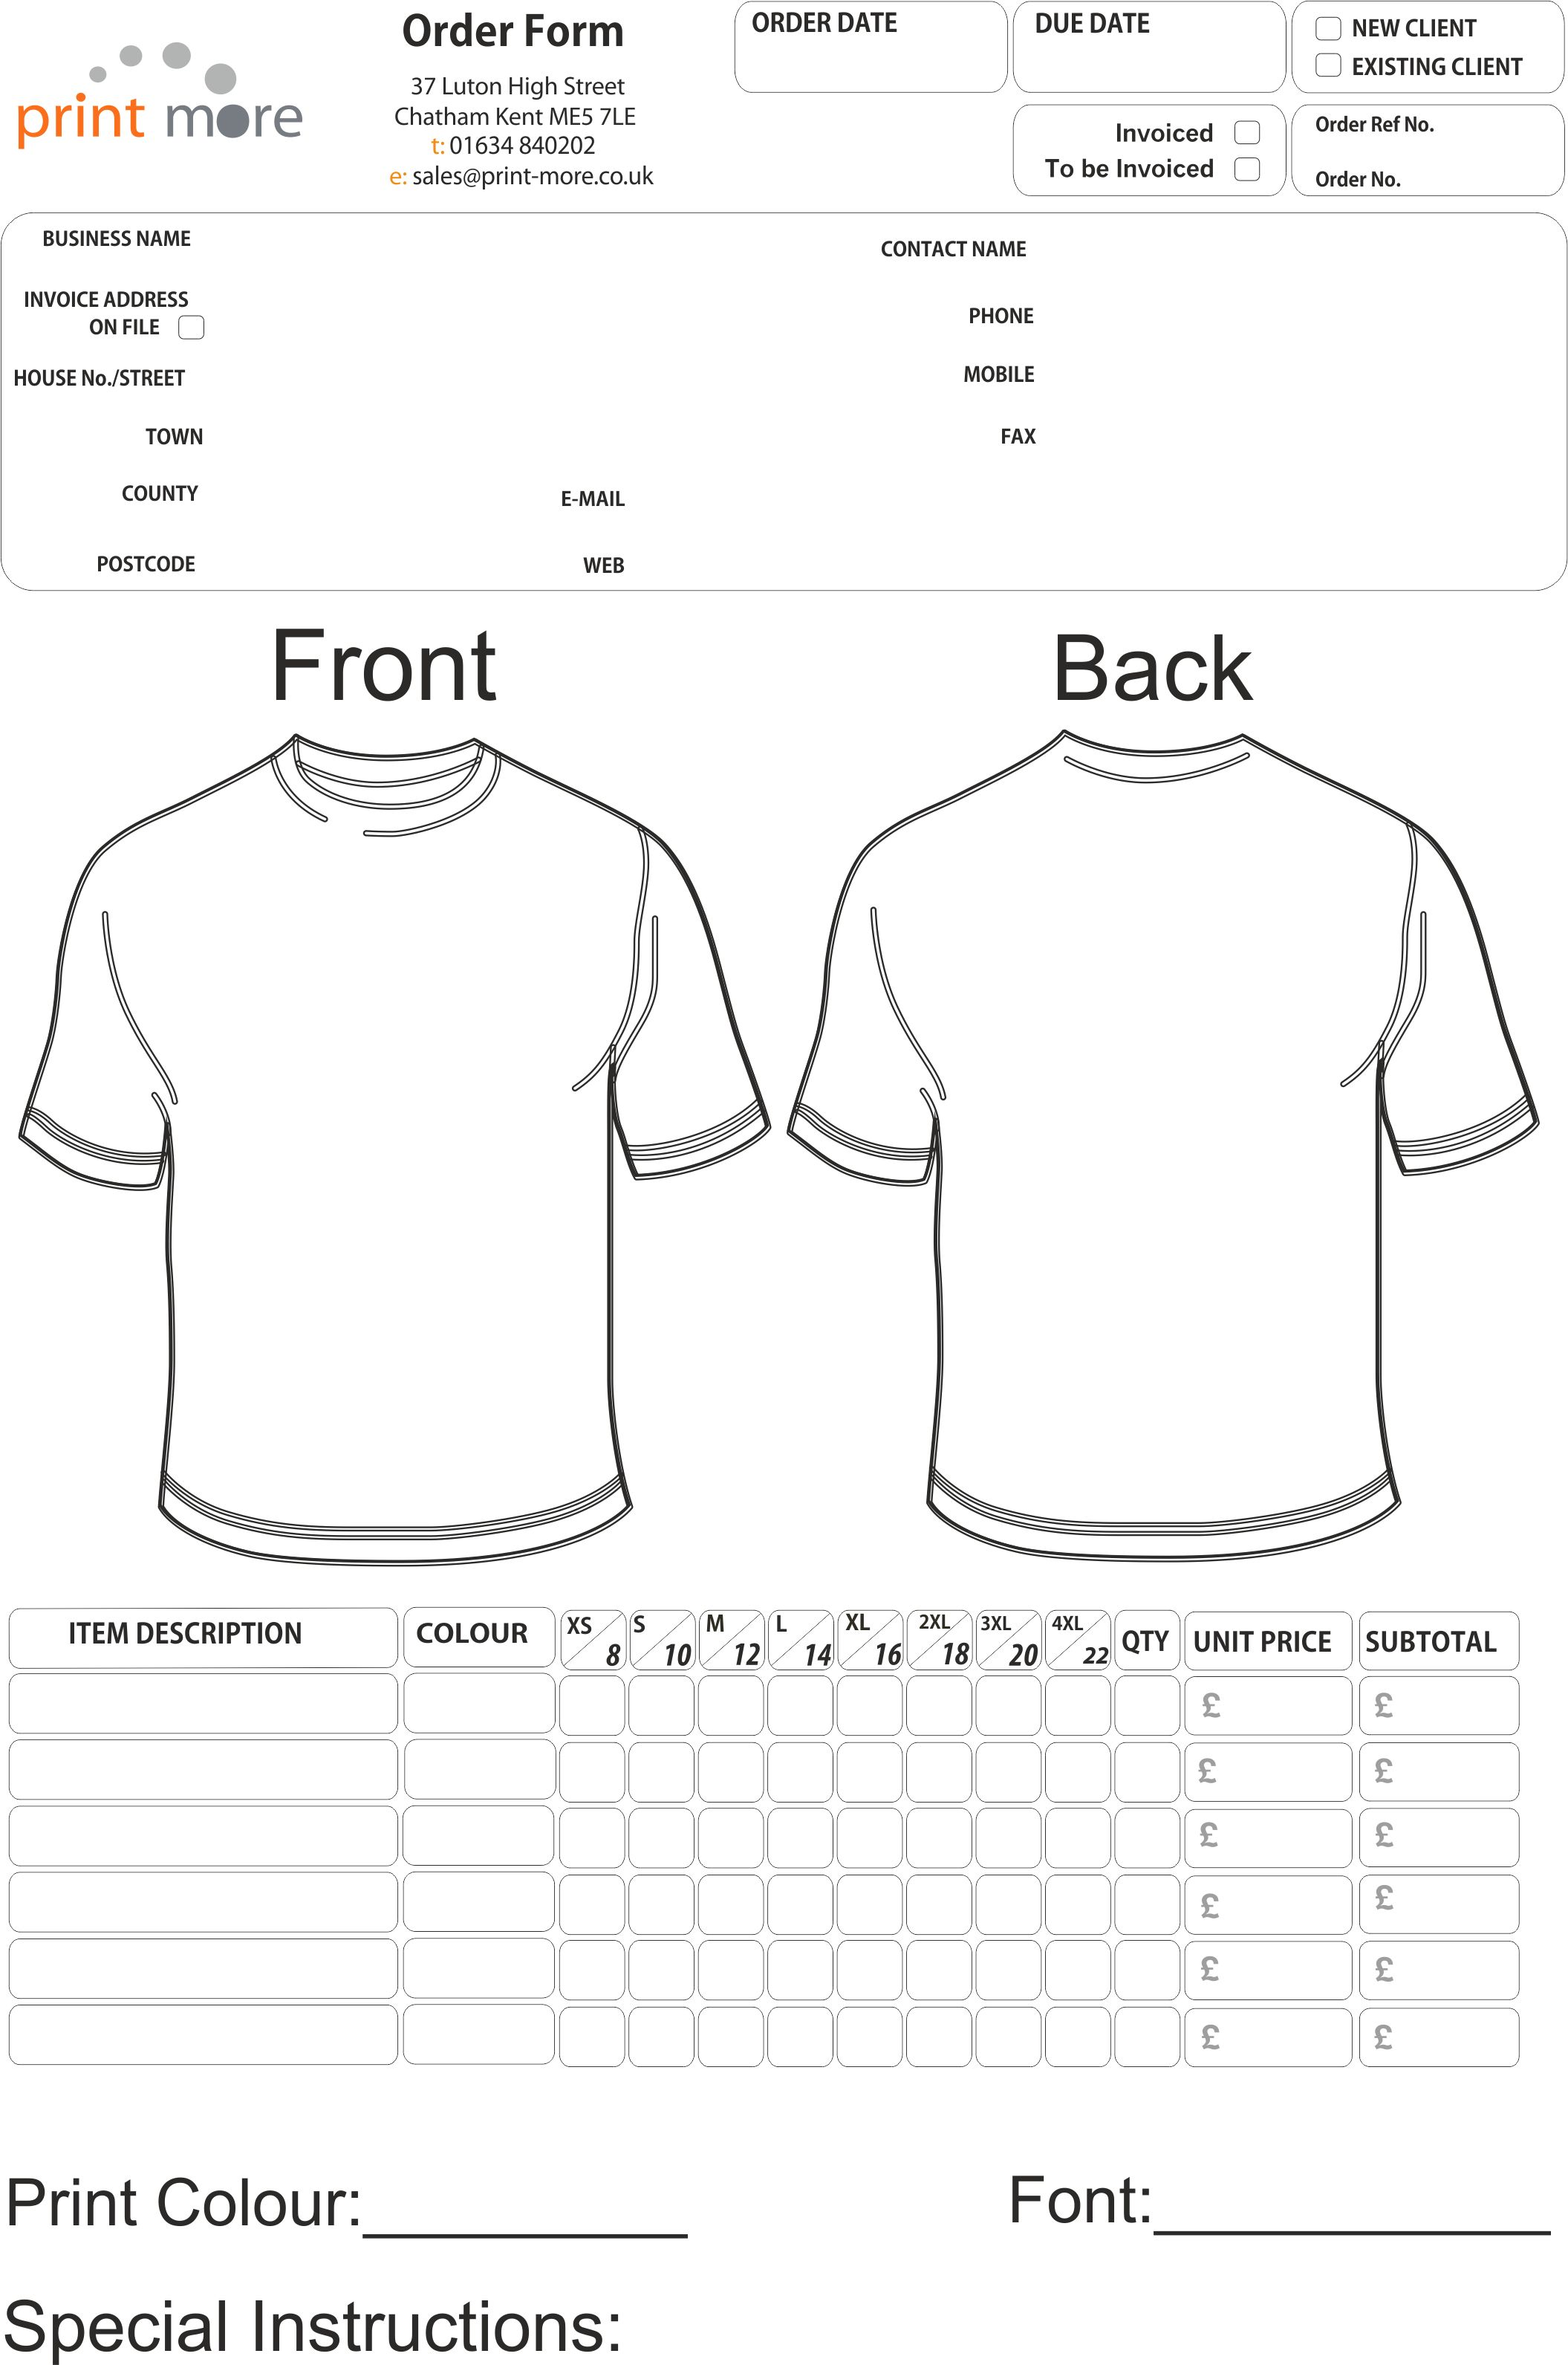 tee shirt order form Melo.in tandem.co